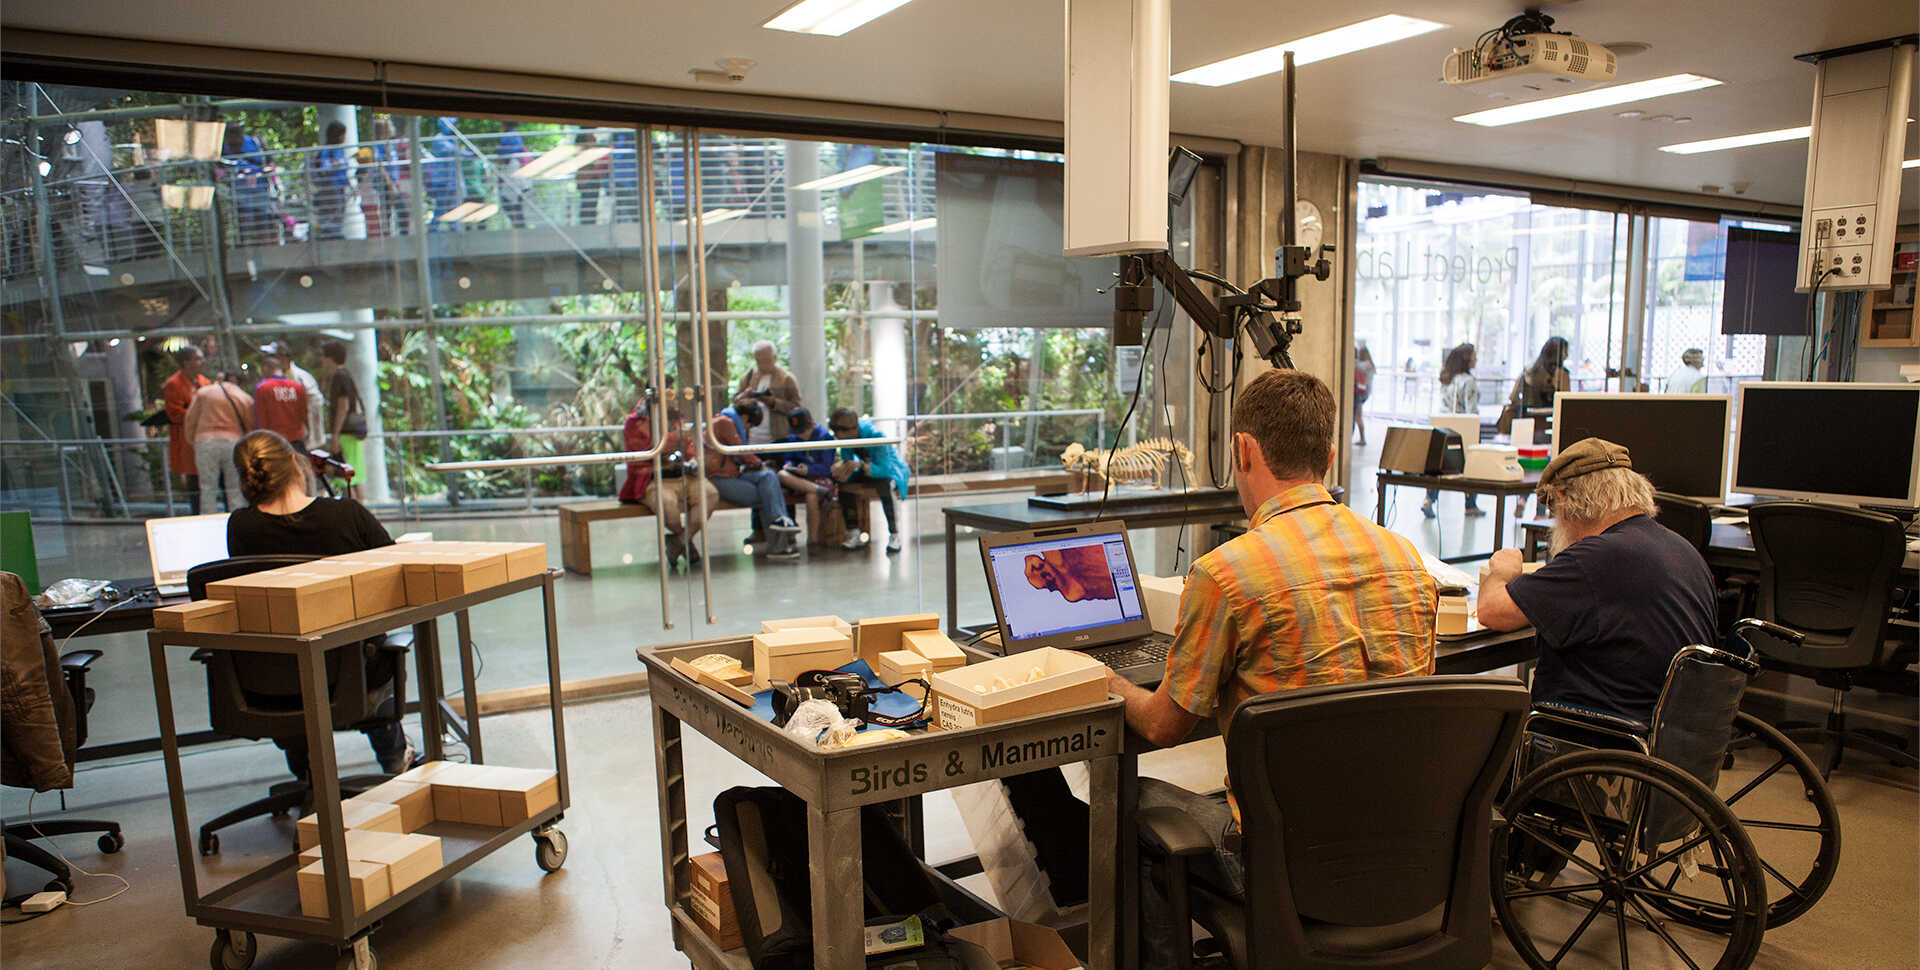 Researchers work in the Project Lab while Academy visitors look on.